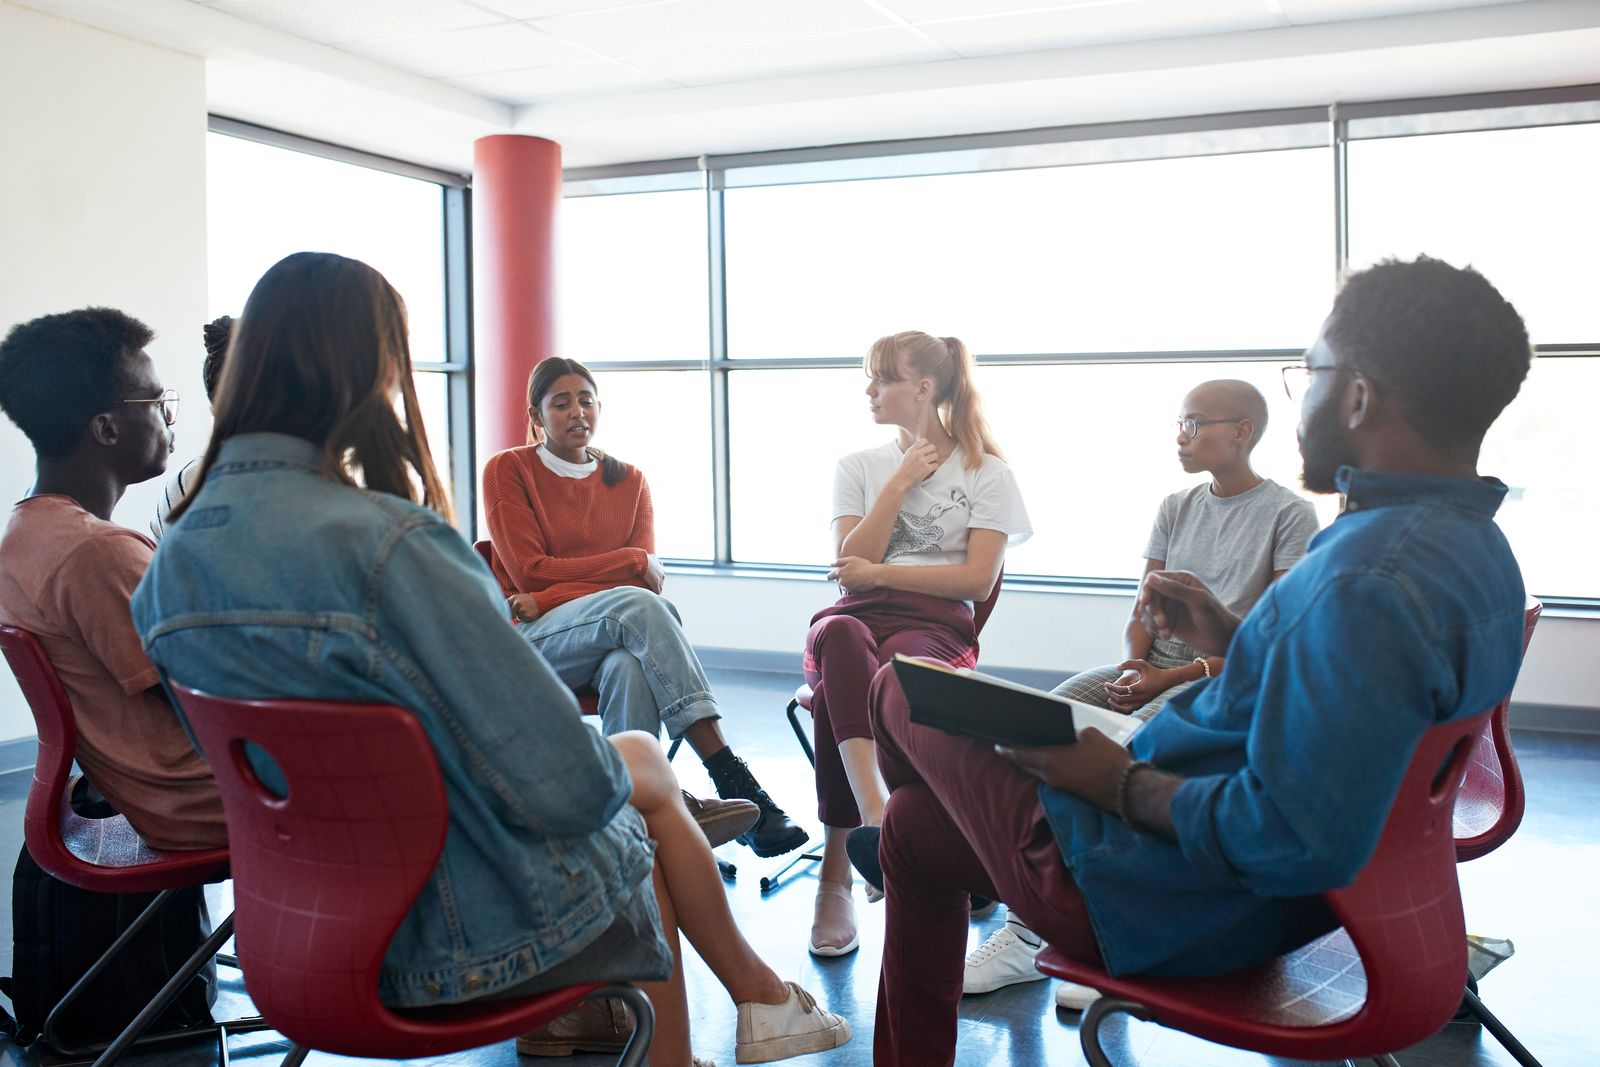 Sad woman sharing with friends and instructor